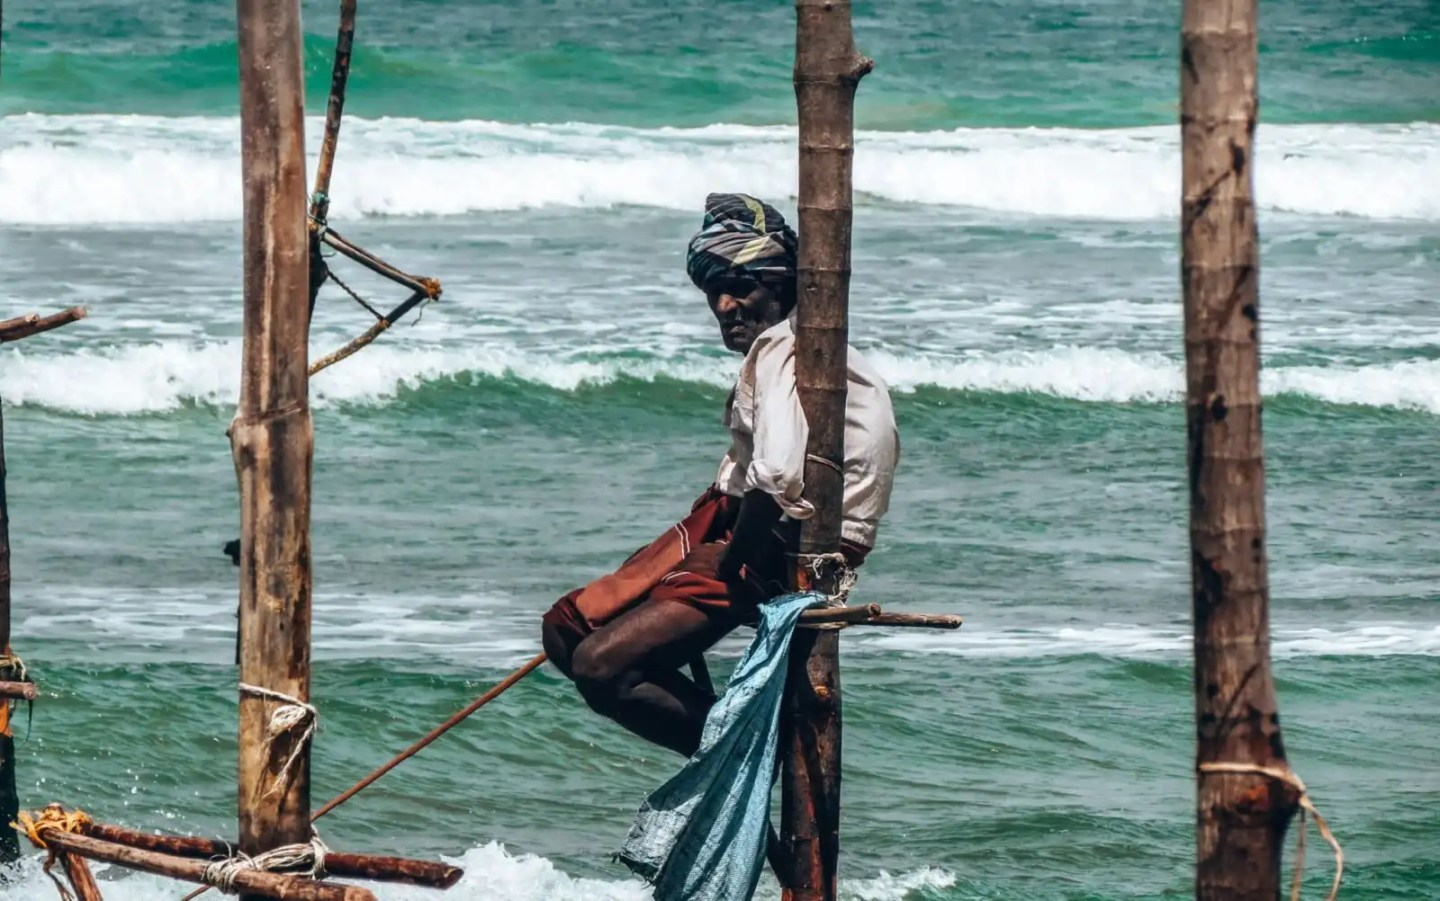 Fisherman perched on small bamboo pole in the Indian Ocean